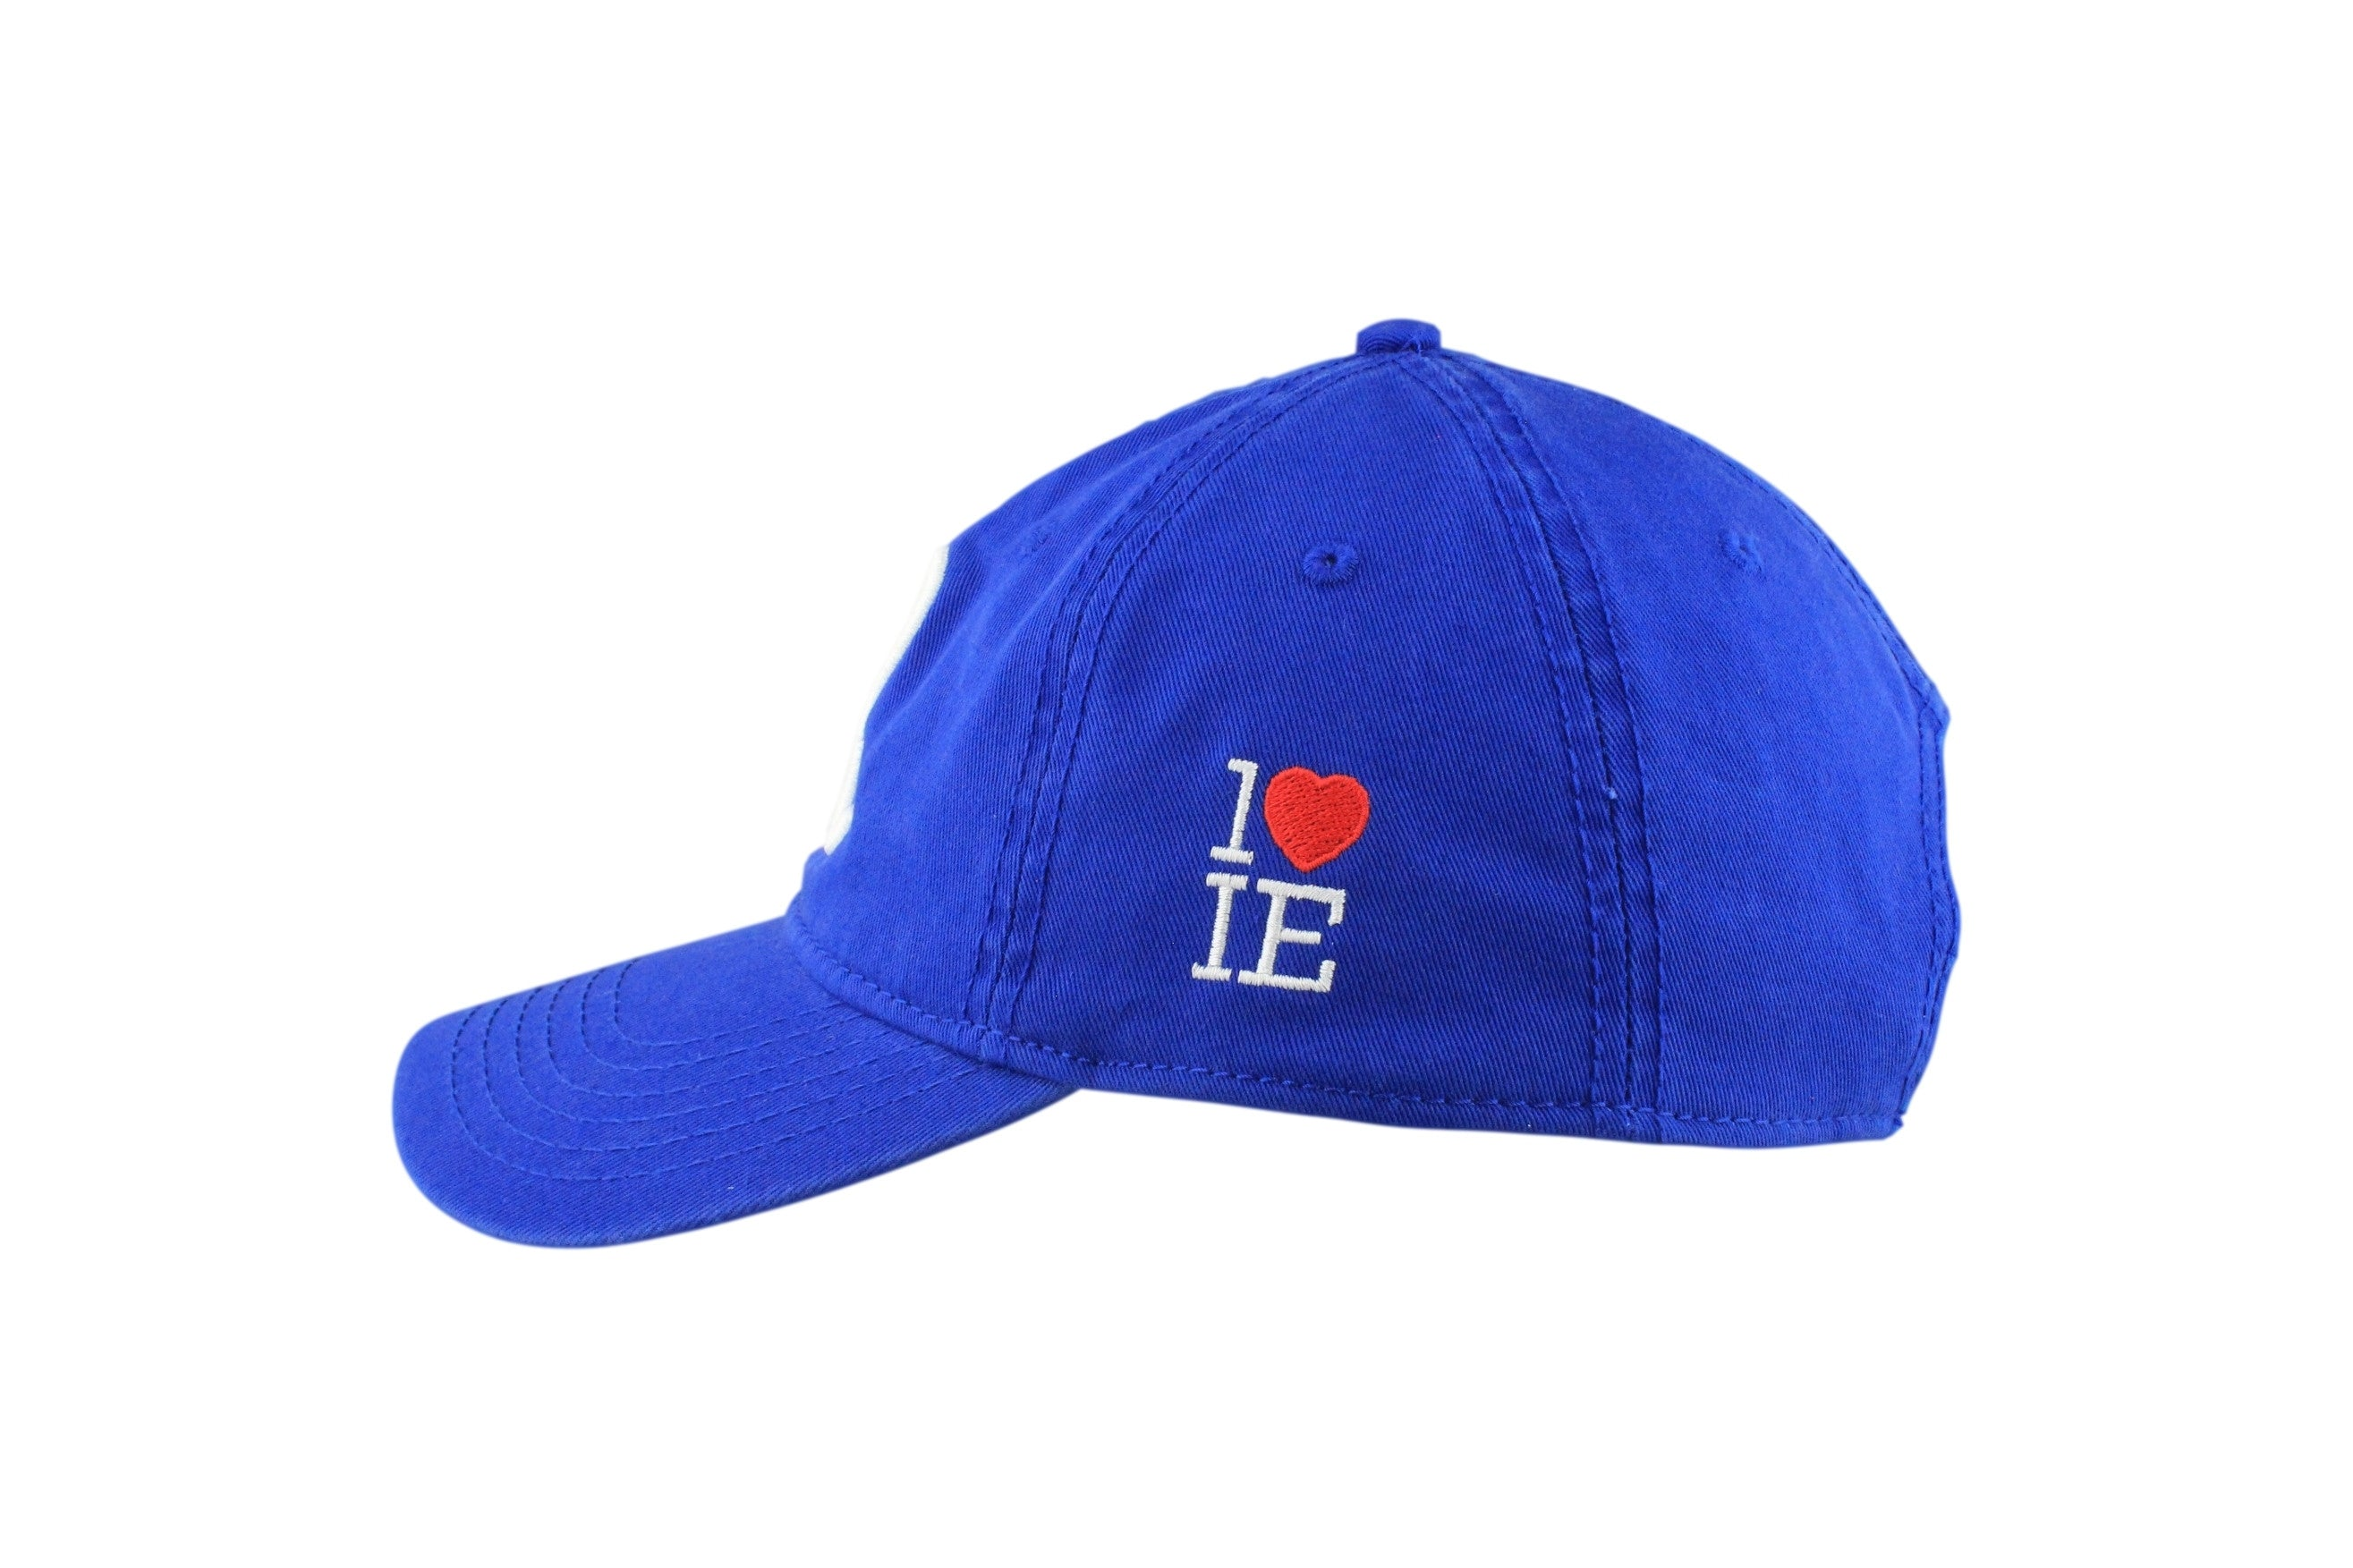 b4f93ce896d 1LoveIE Signature Dad Hat (Royal White)